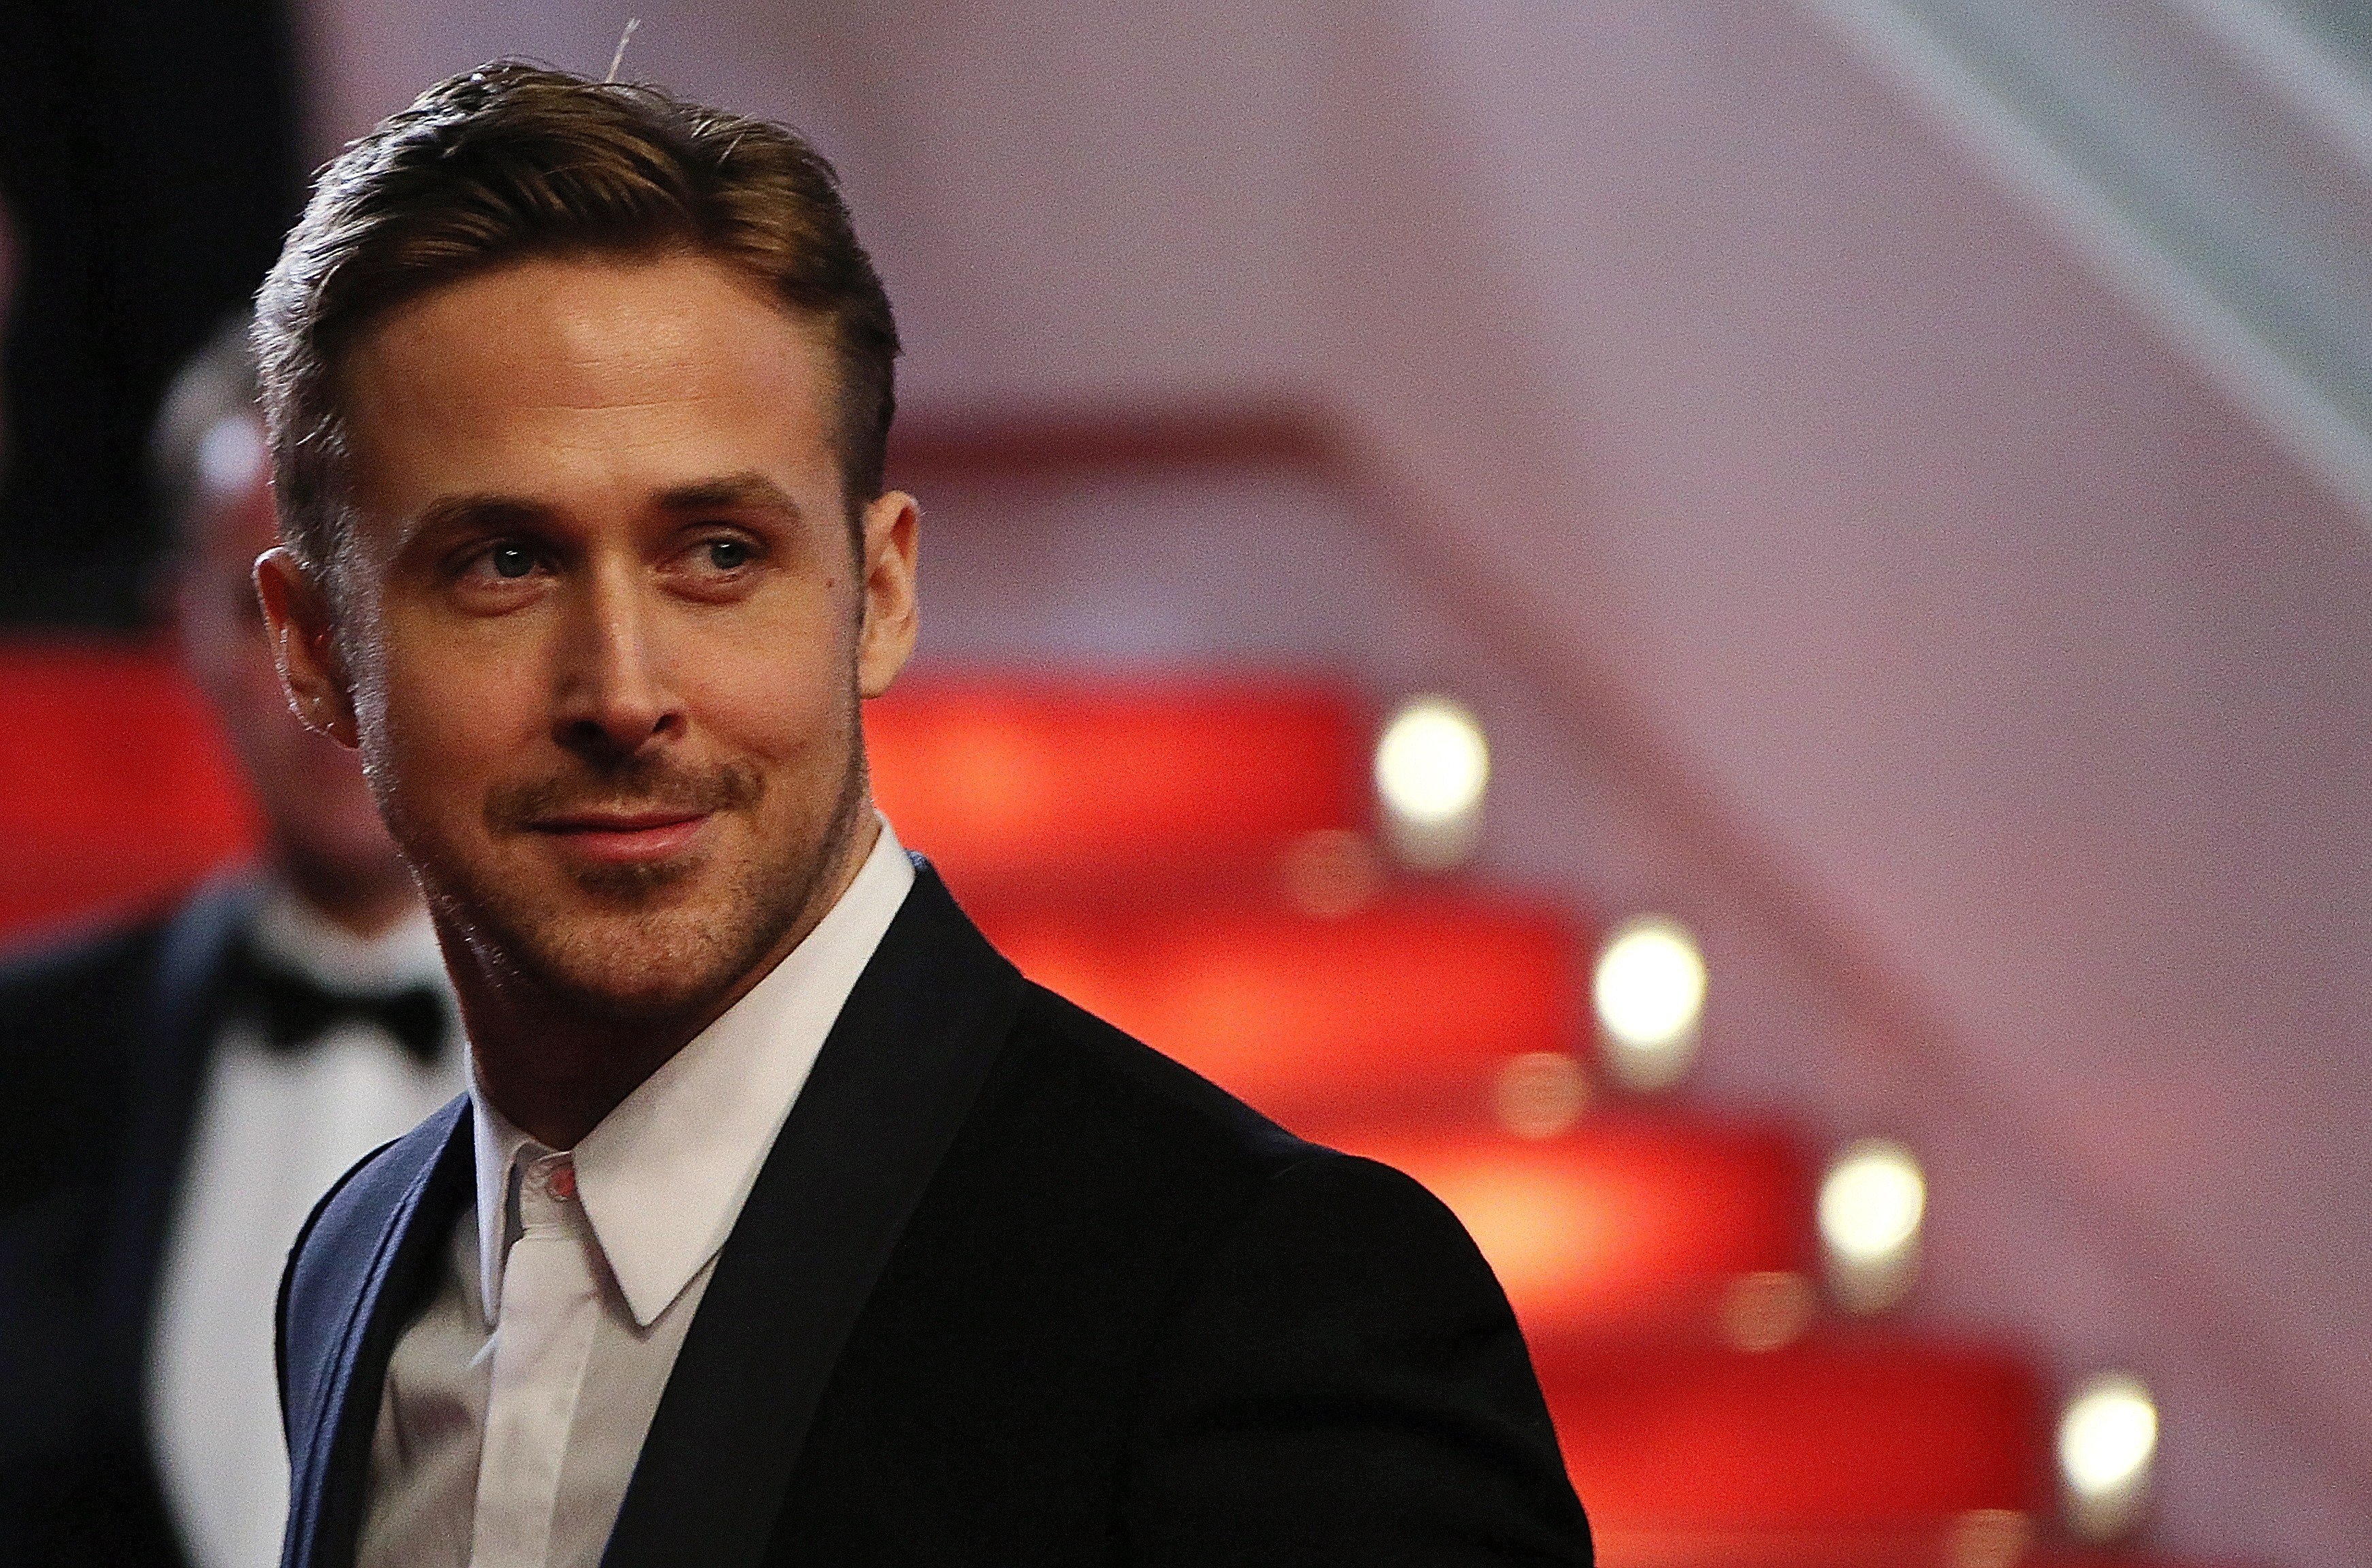 Ryan Gosling poses as he arrives for the screening of the film  Lost River  at the 67th edition of the Cannes Film Festival in Cannes, southern France, on May 20, 2014.